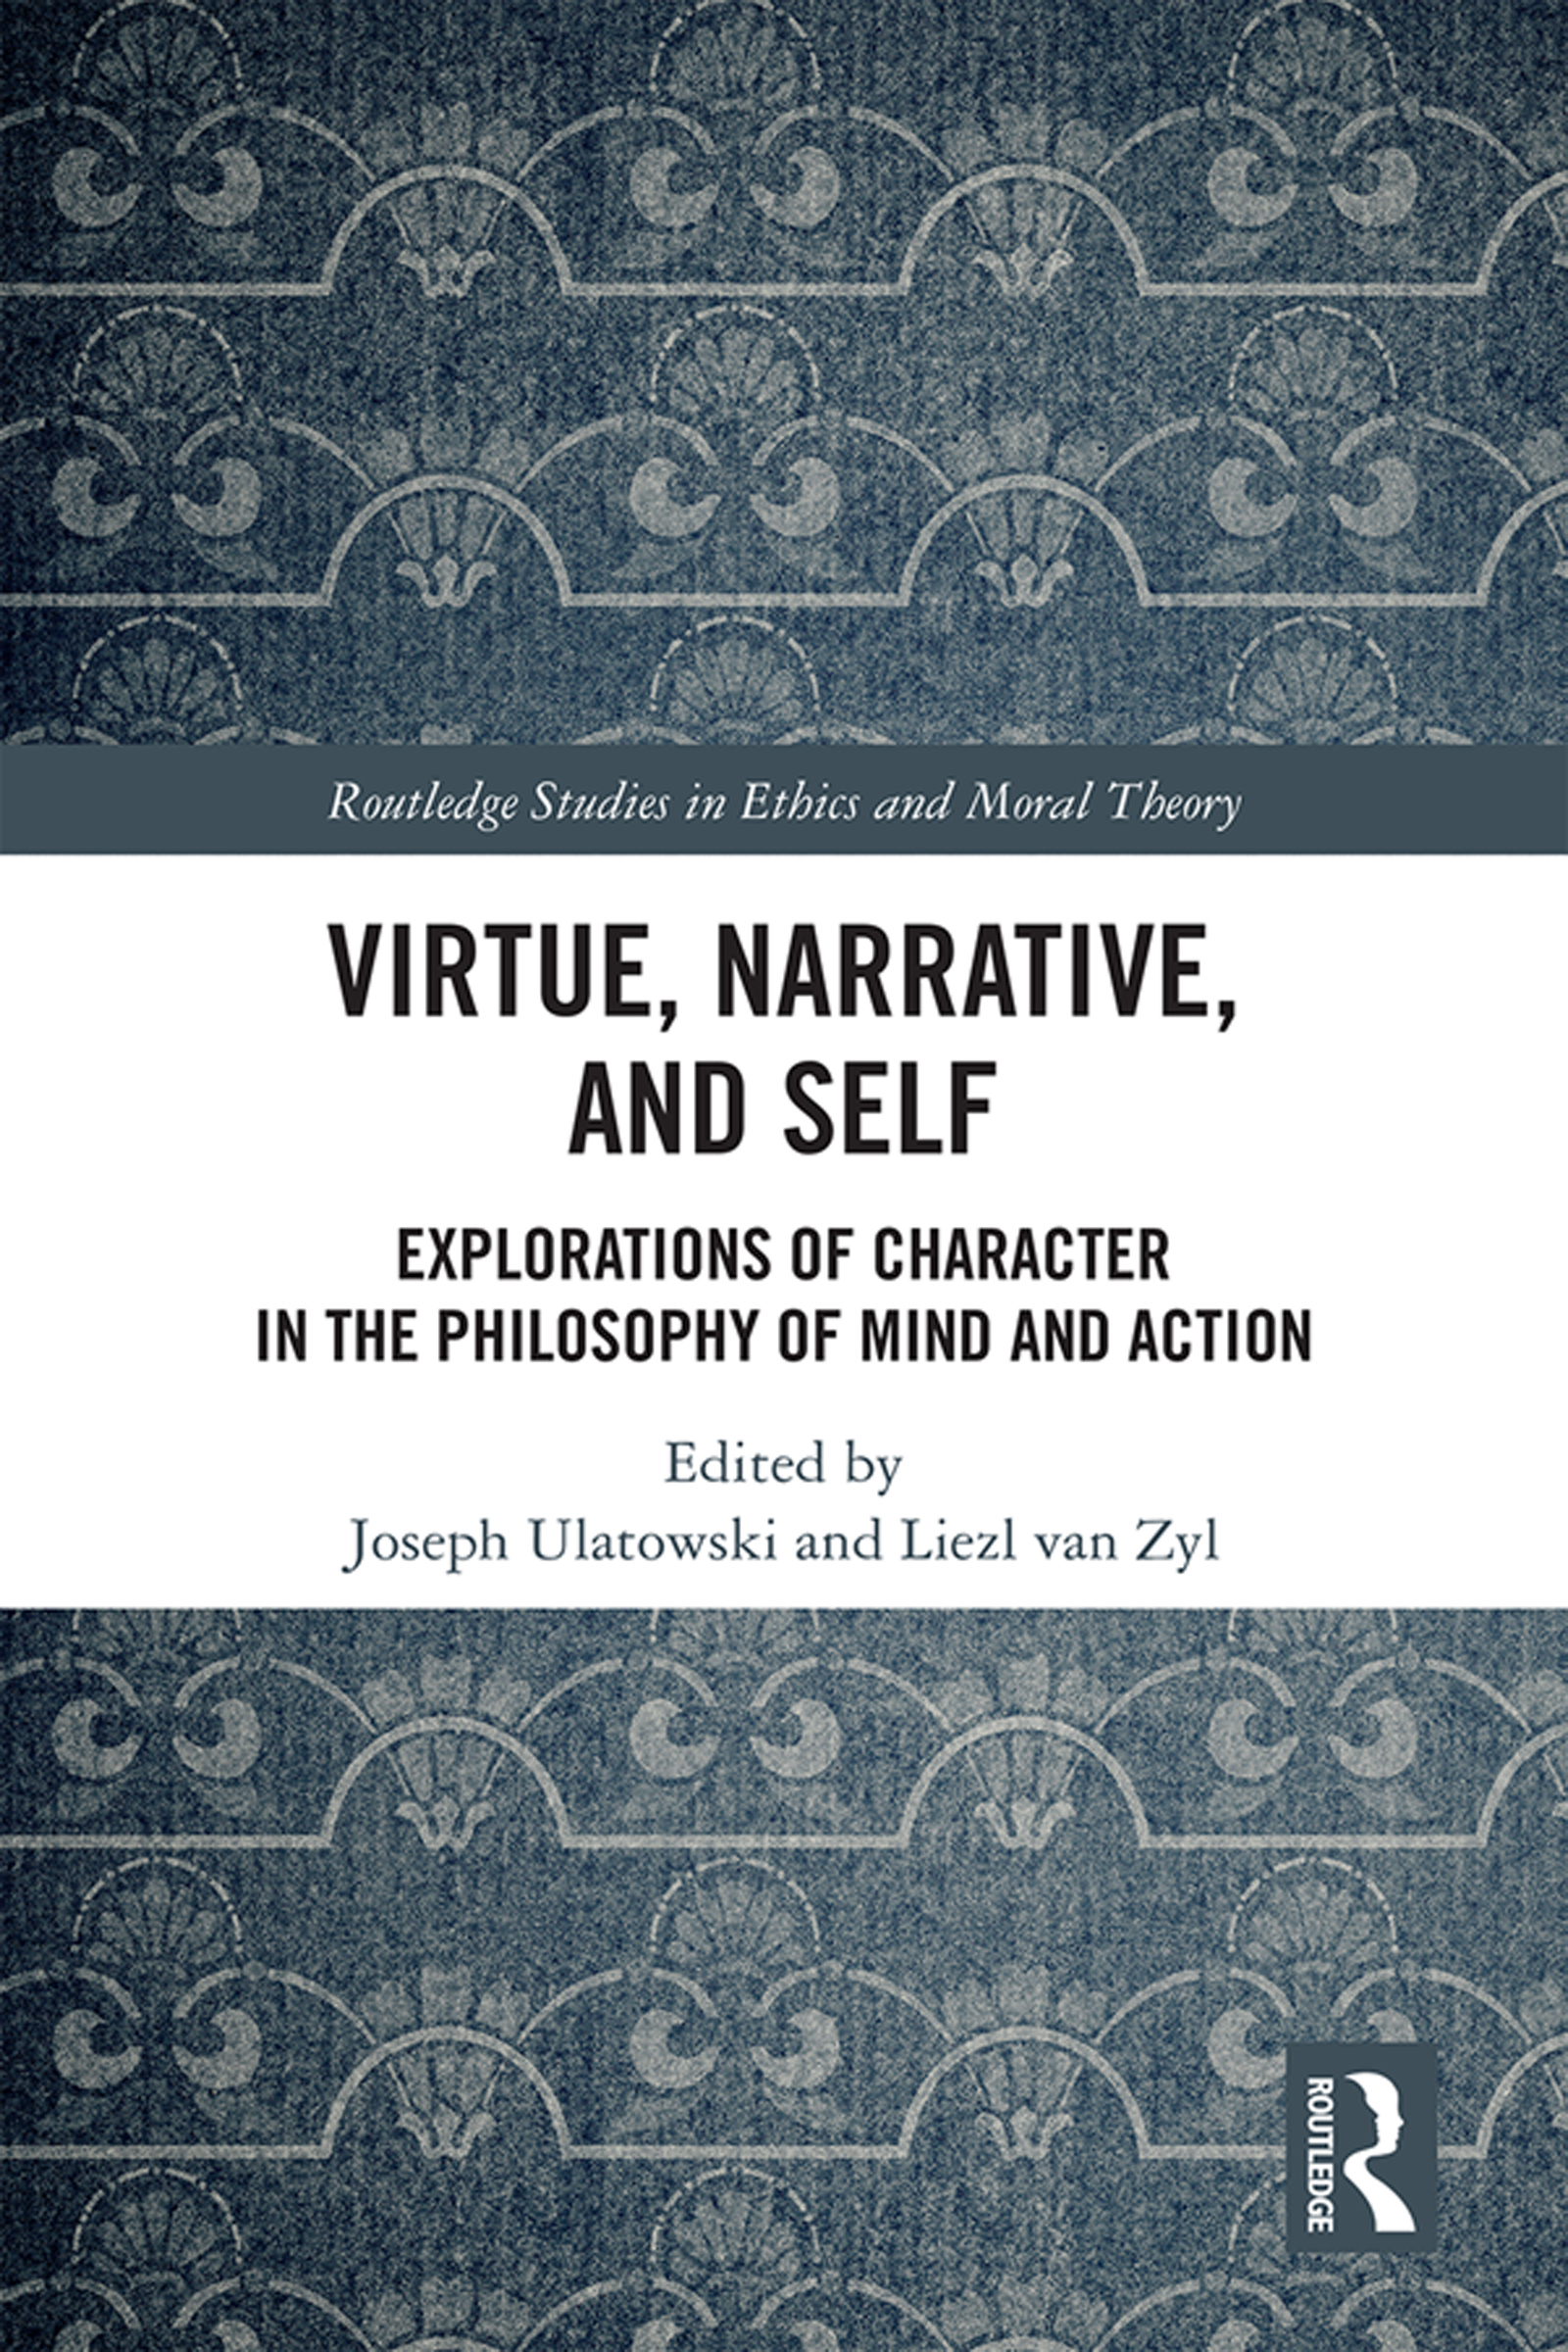 How Self-Narratives and Virtues Cause Actions